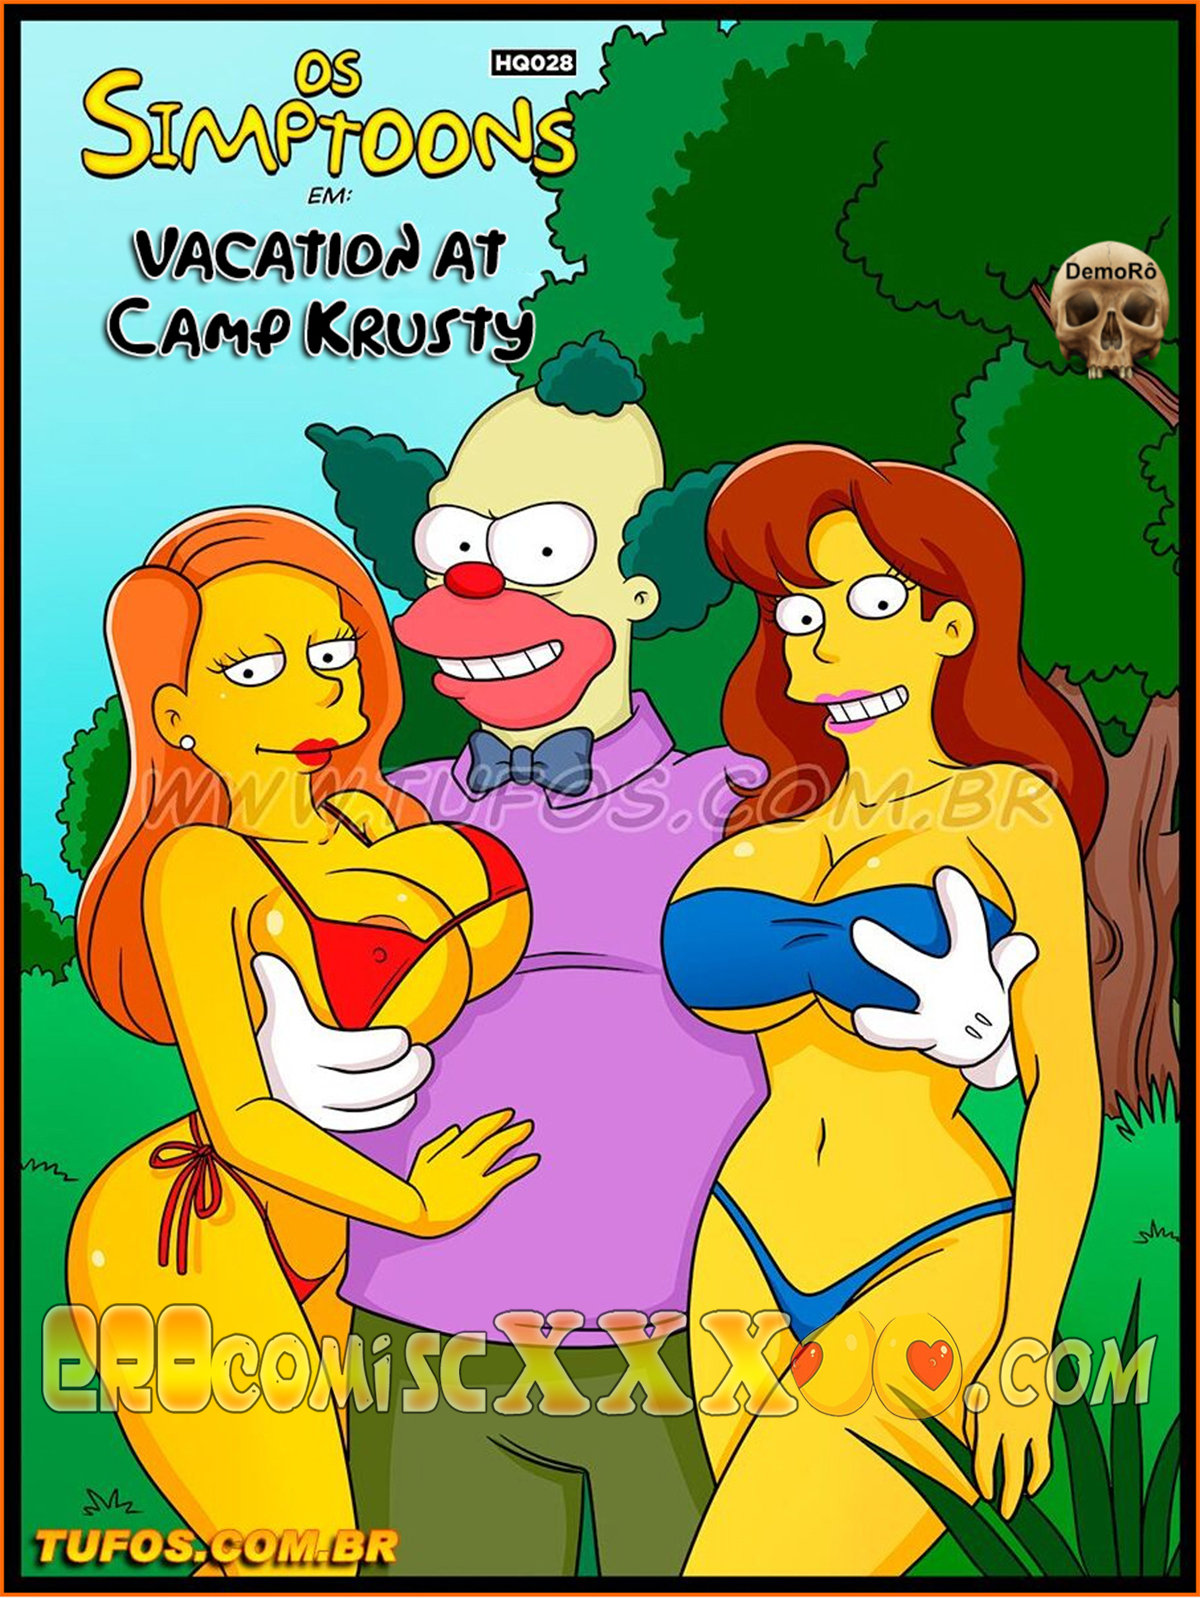 001 20 - Os Simptoons 28. Vacation at Camp Krusty.